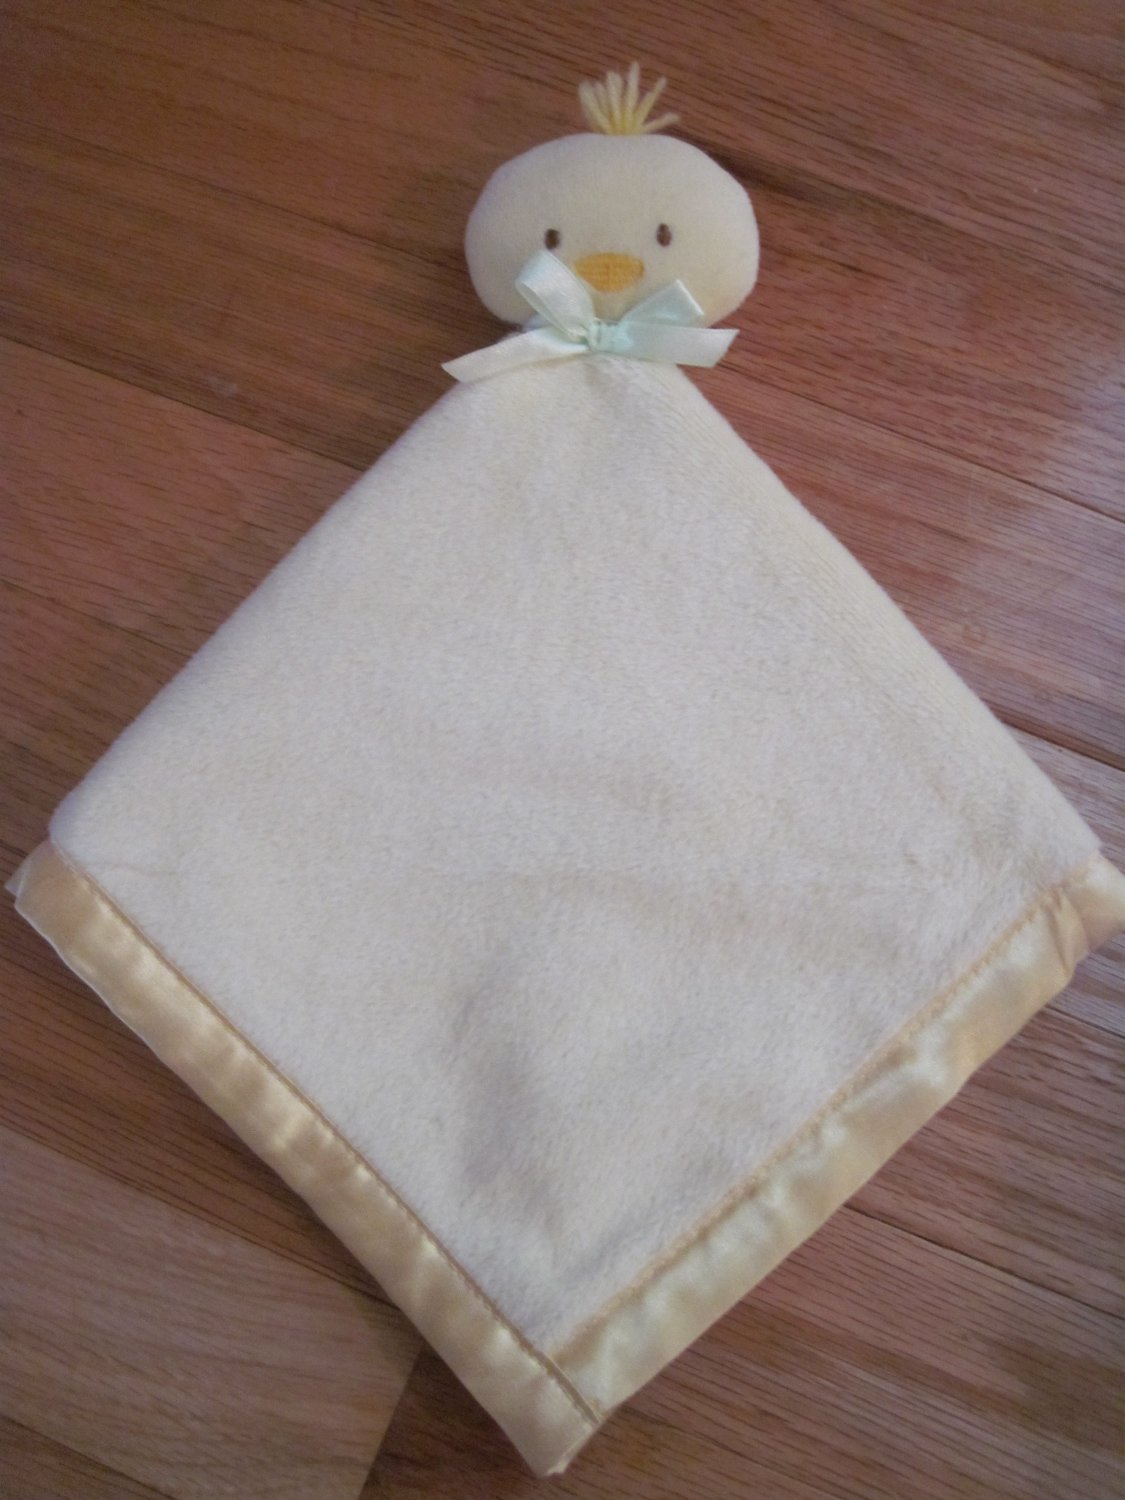 Baby Essentials Plush Yellow Duck Chick Security Blanket